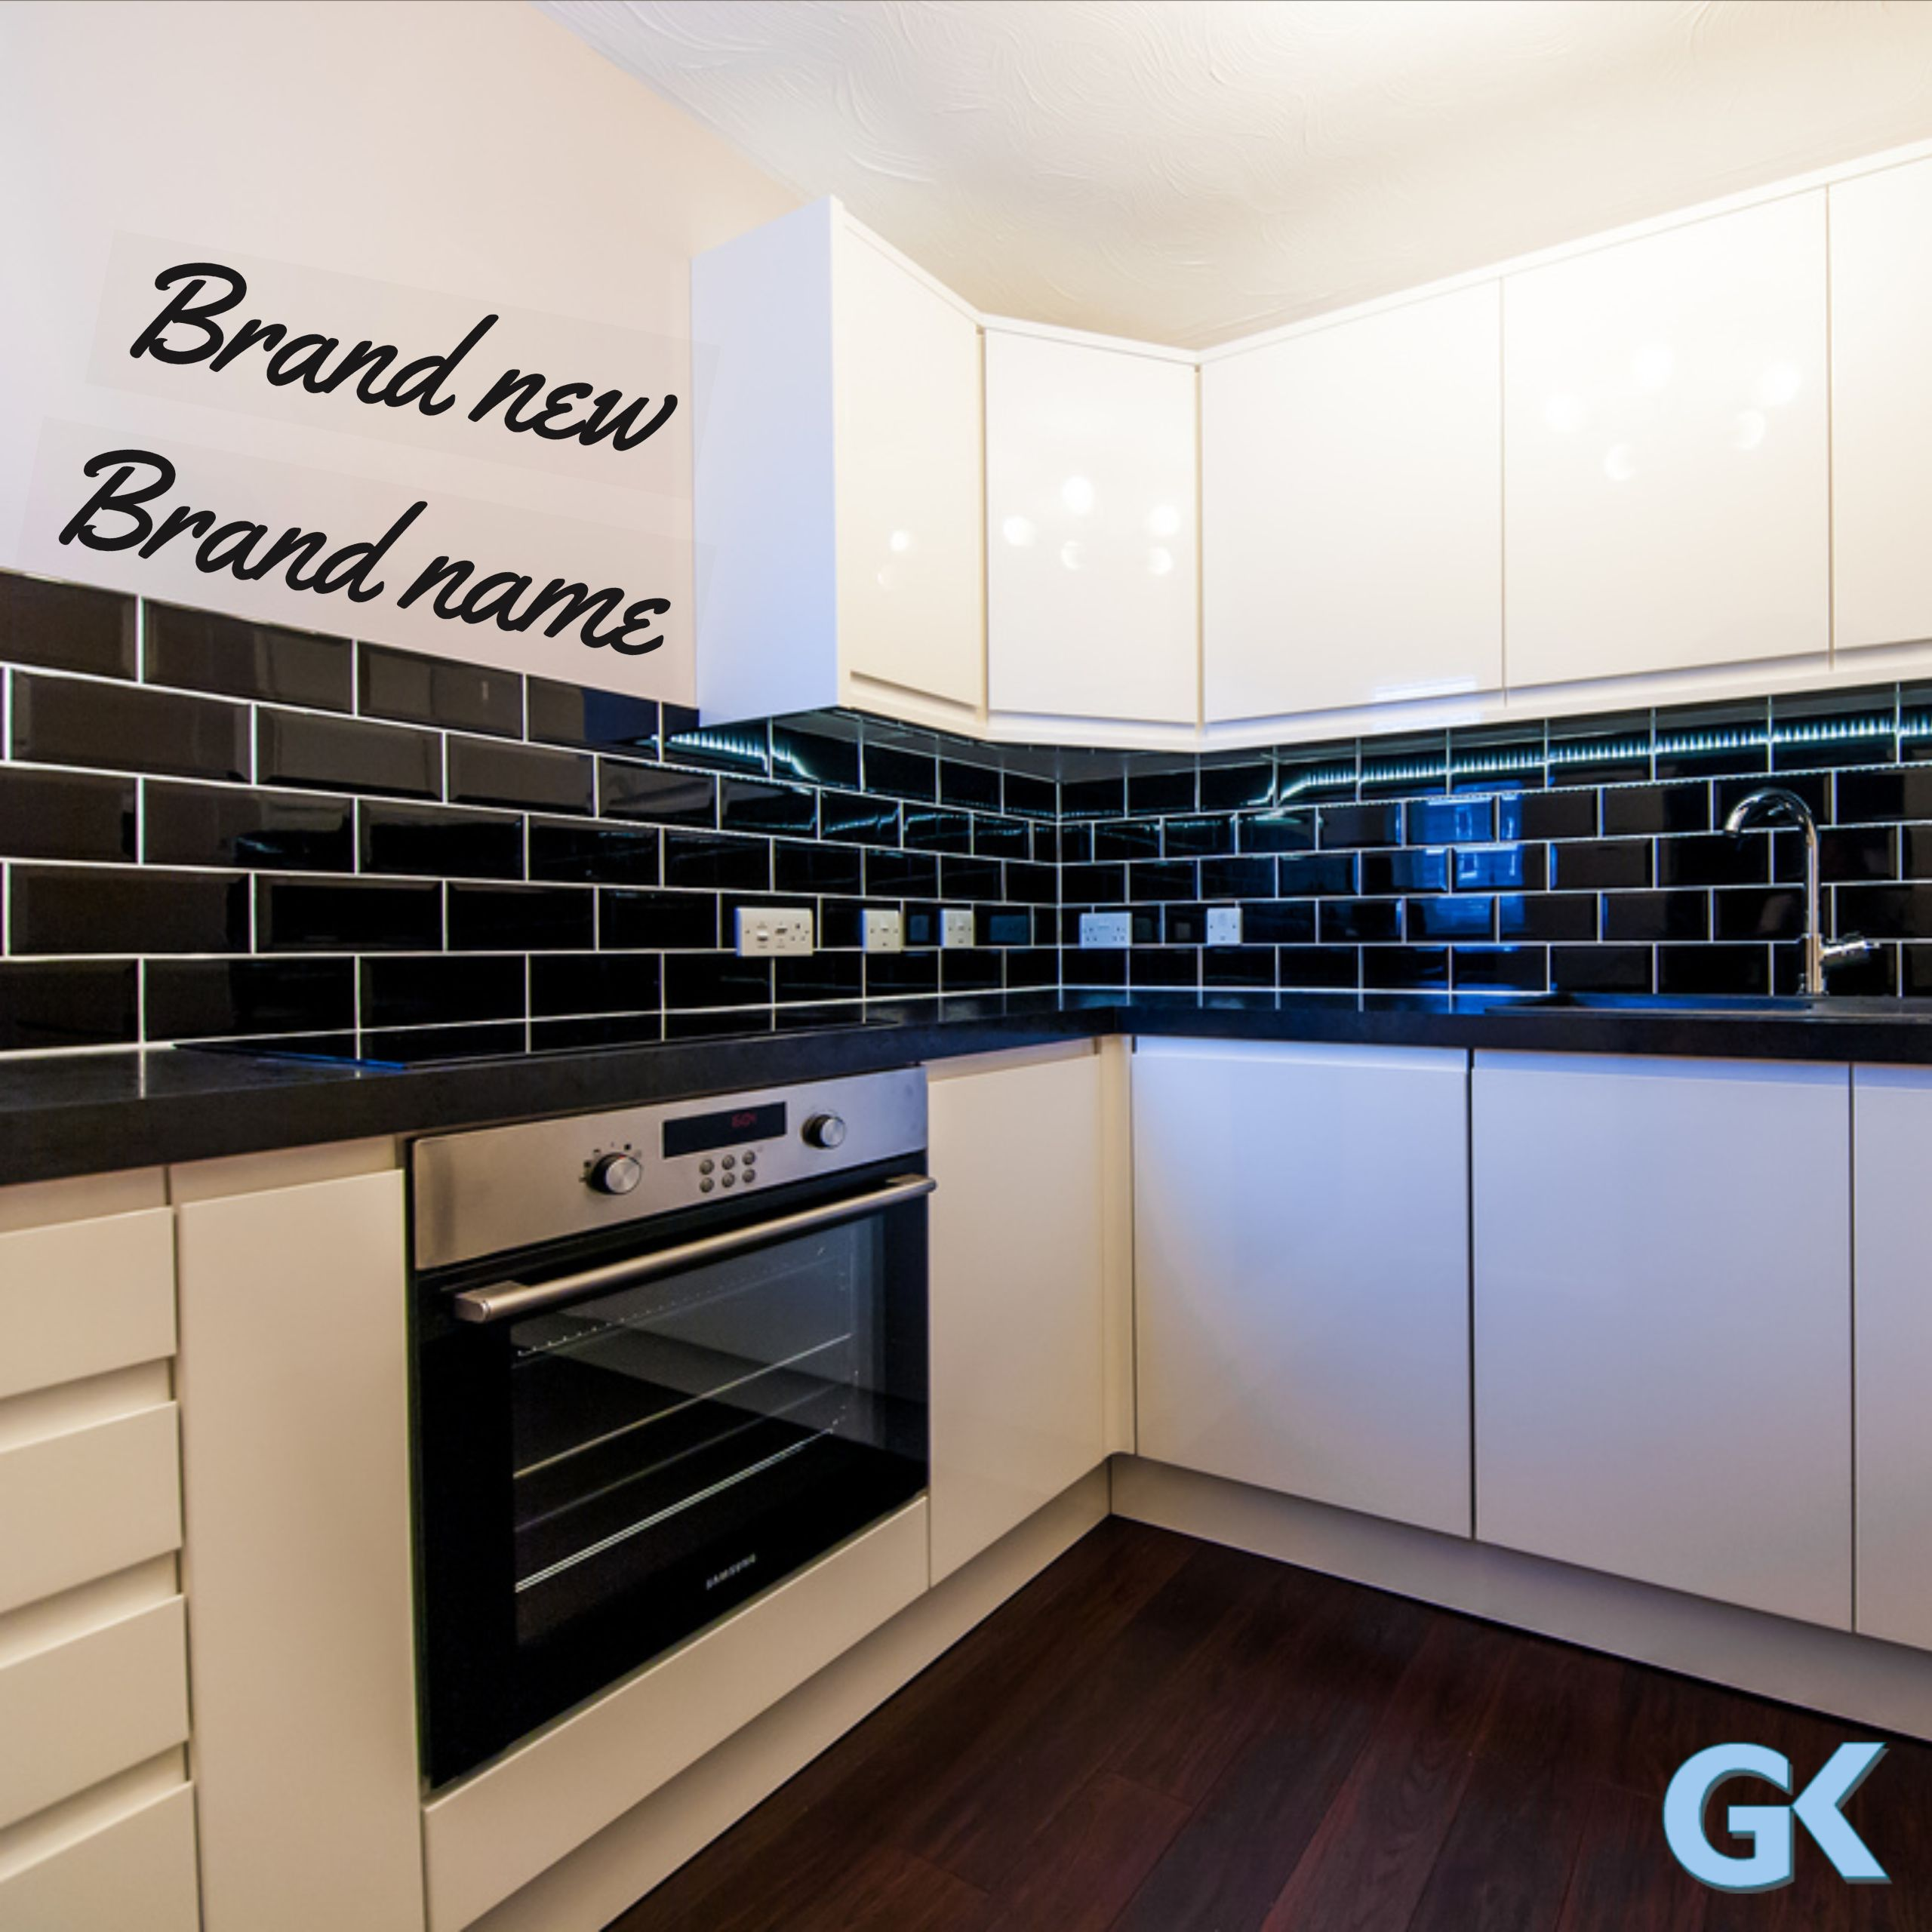 Georgia Kitchens Has All Of Your Brand New Brand Name Kitchen Appliances That Can Help You Build The Kitch Kitchen Renovation Kitchen Technology Kitchen Words